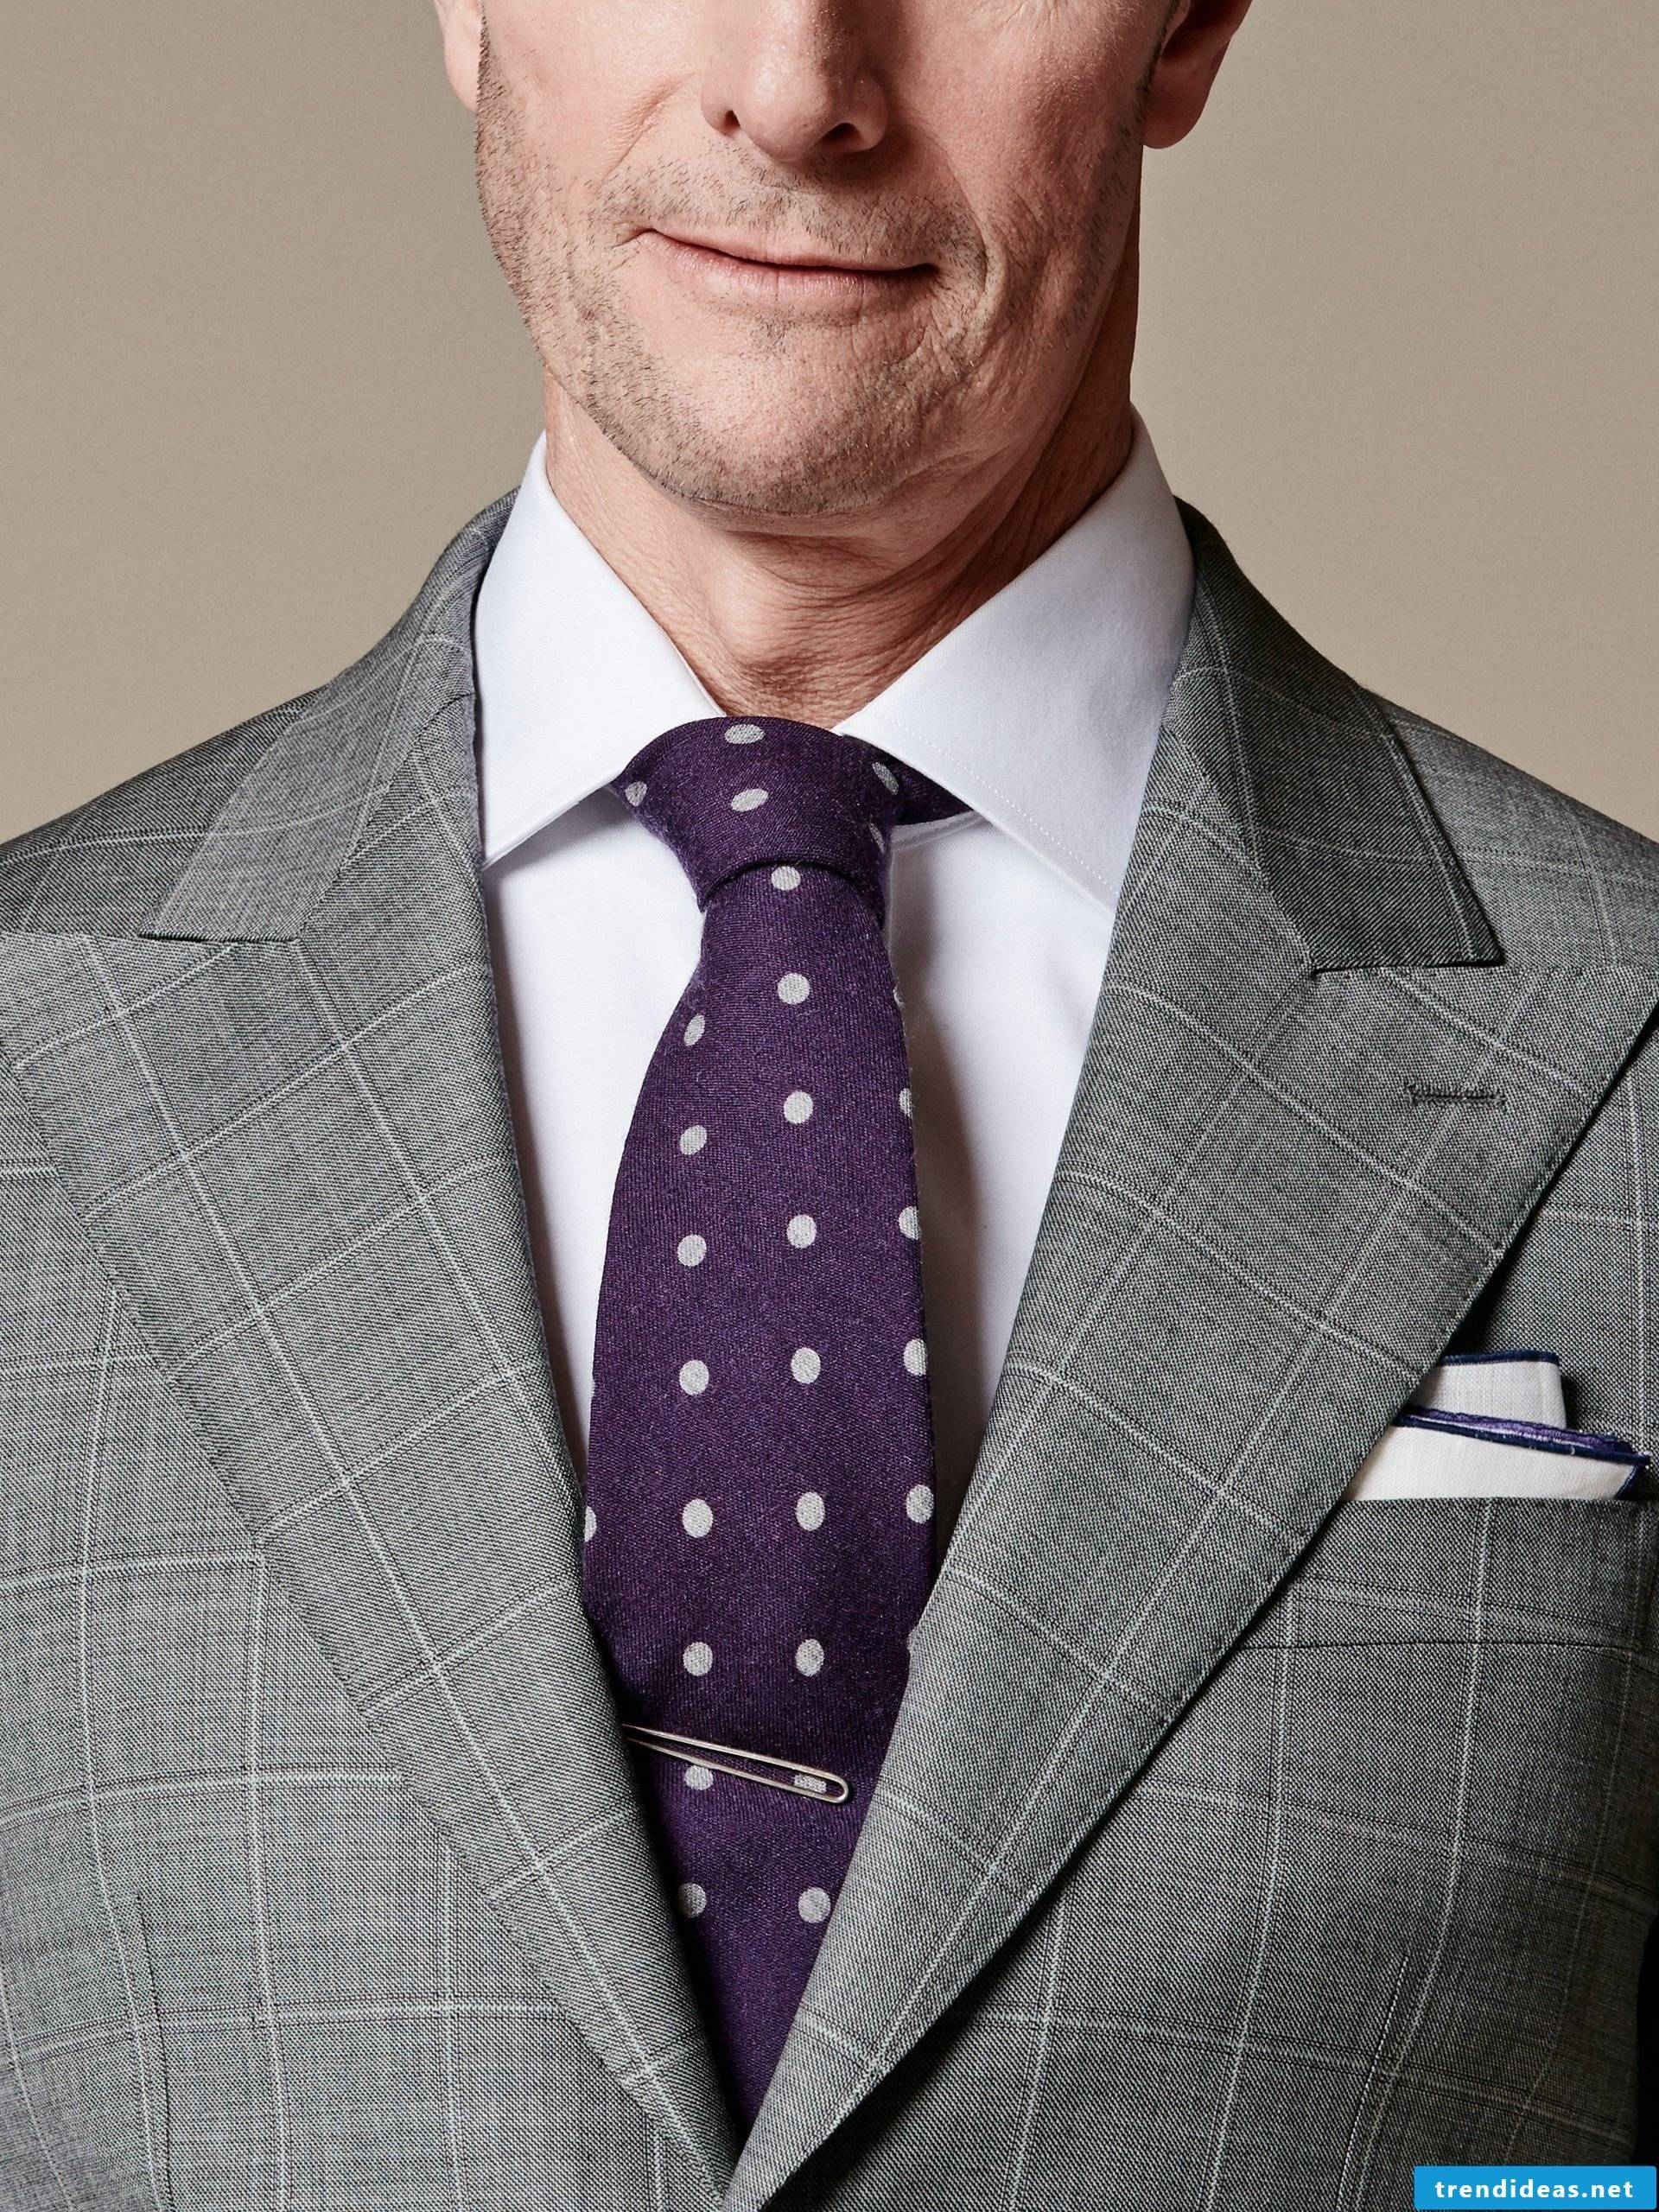 Detailed instructions for Half Windsor tie knot